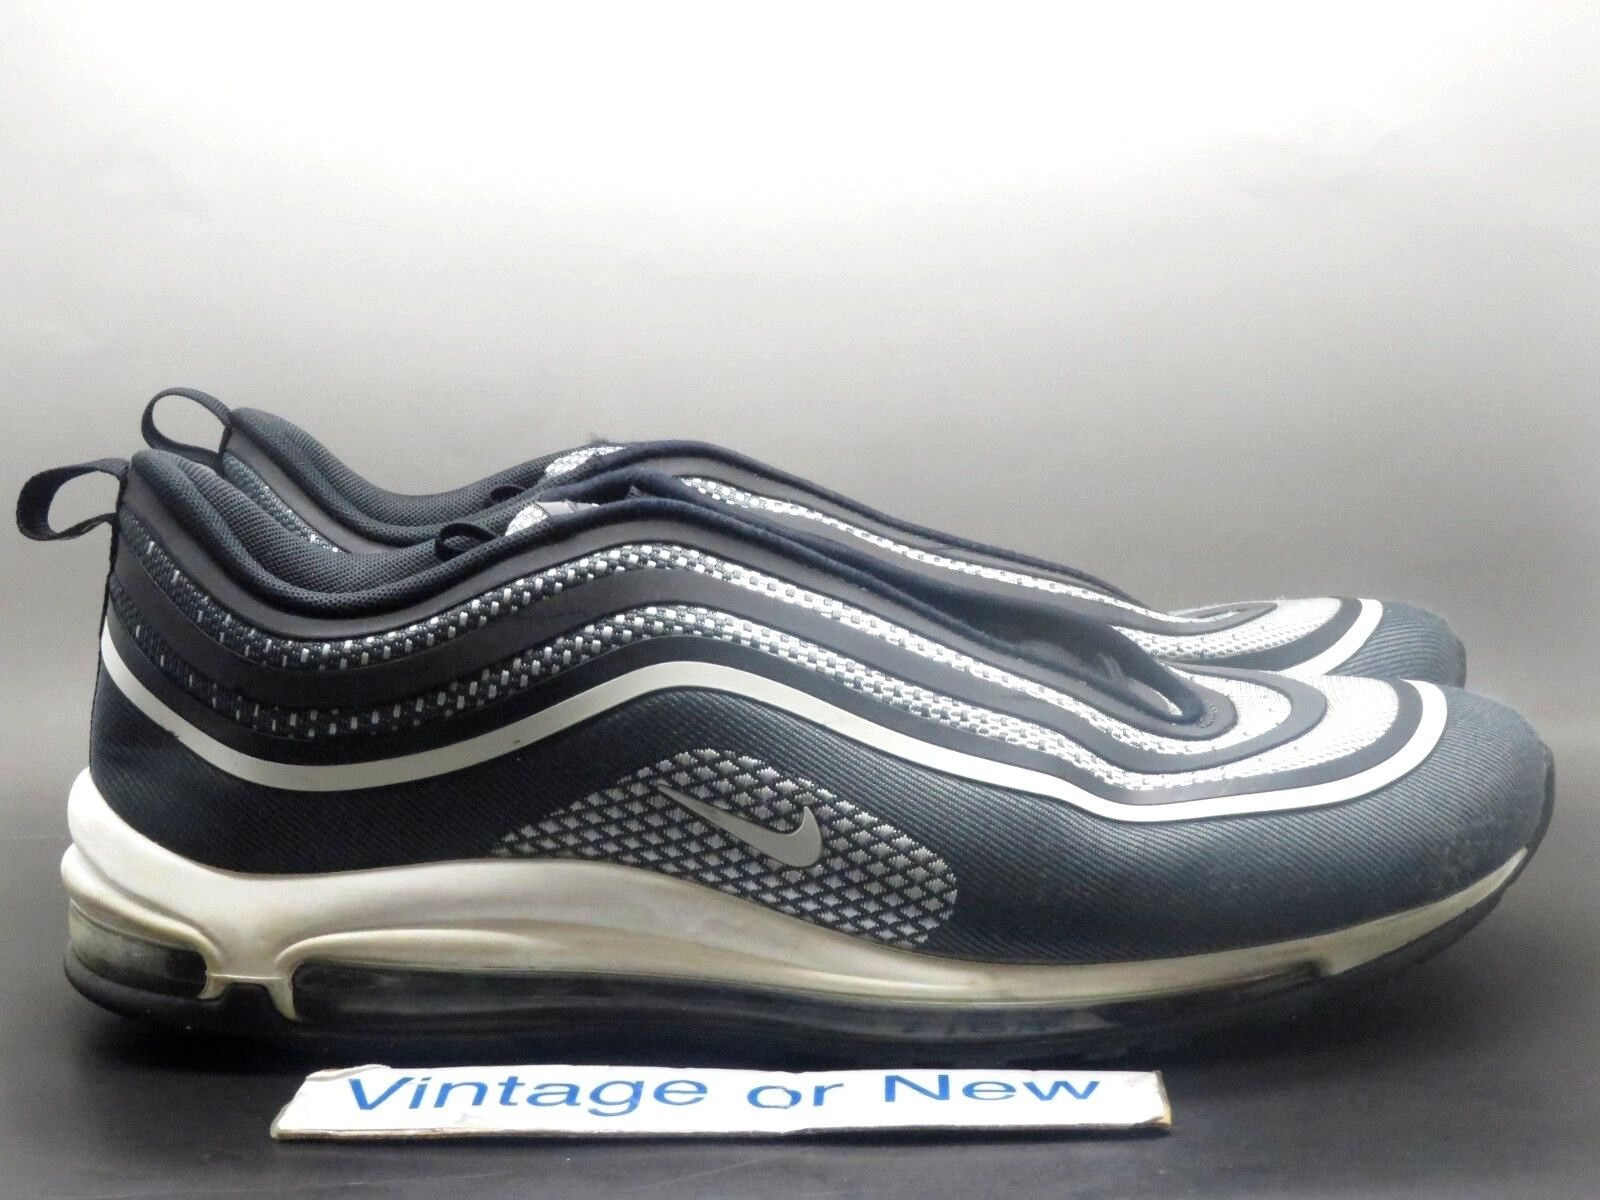 Men's Nike Air Max '97 Ultra '17 Black Pure Platinum Anthracite 918356-001 sz 13